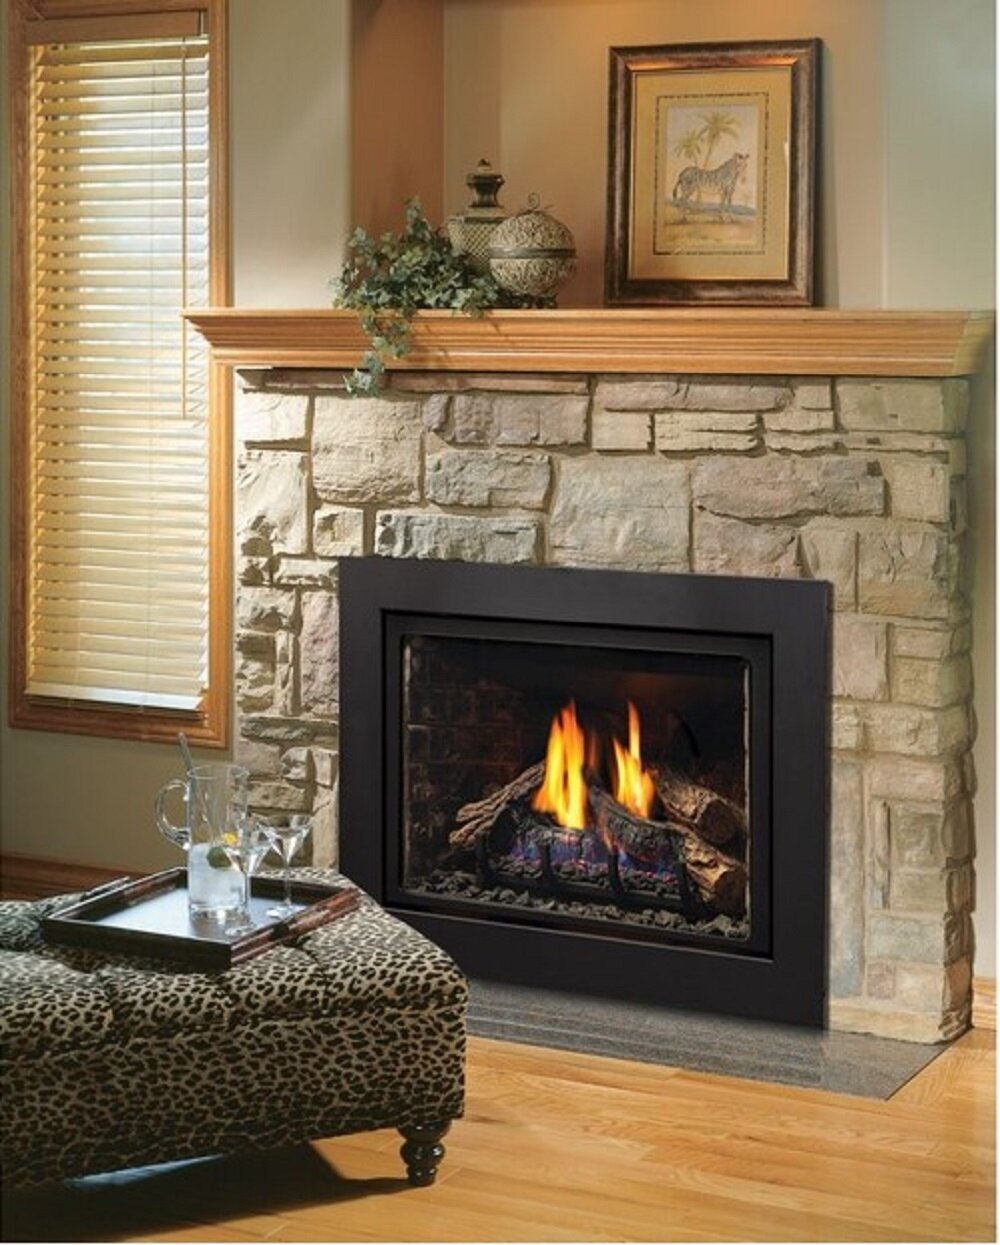 Fireplace Grate with Blower Beautiful Direct Vent Natural Gas Propane Fireplace Insert